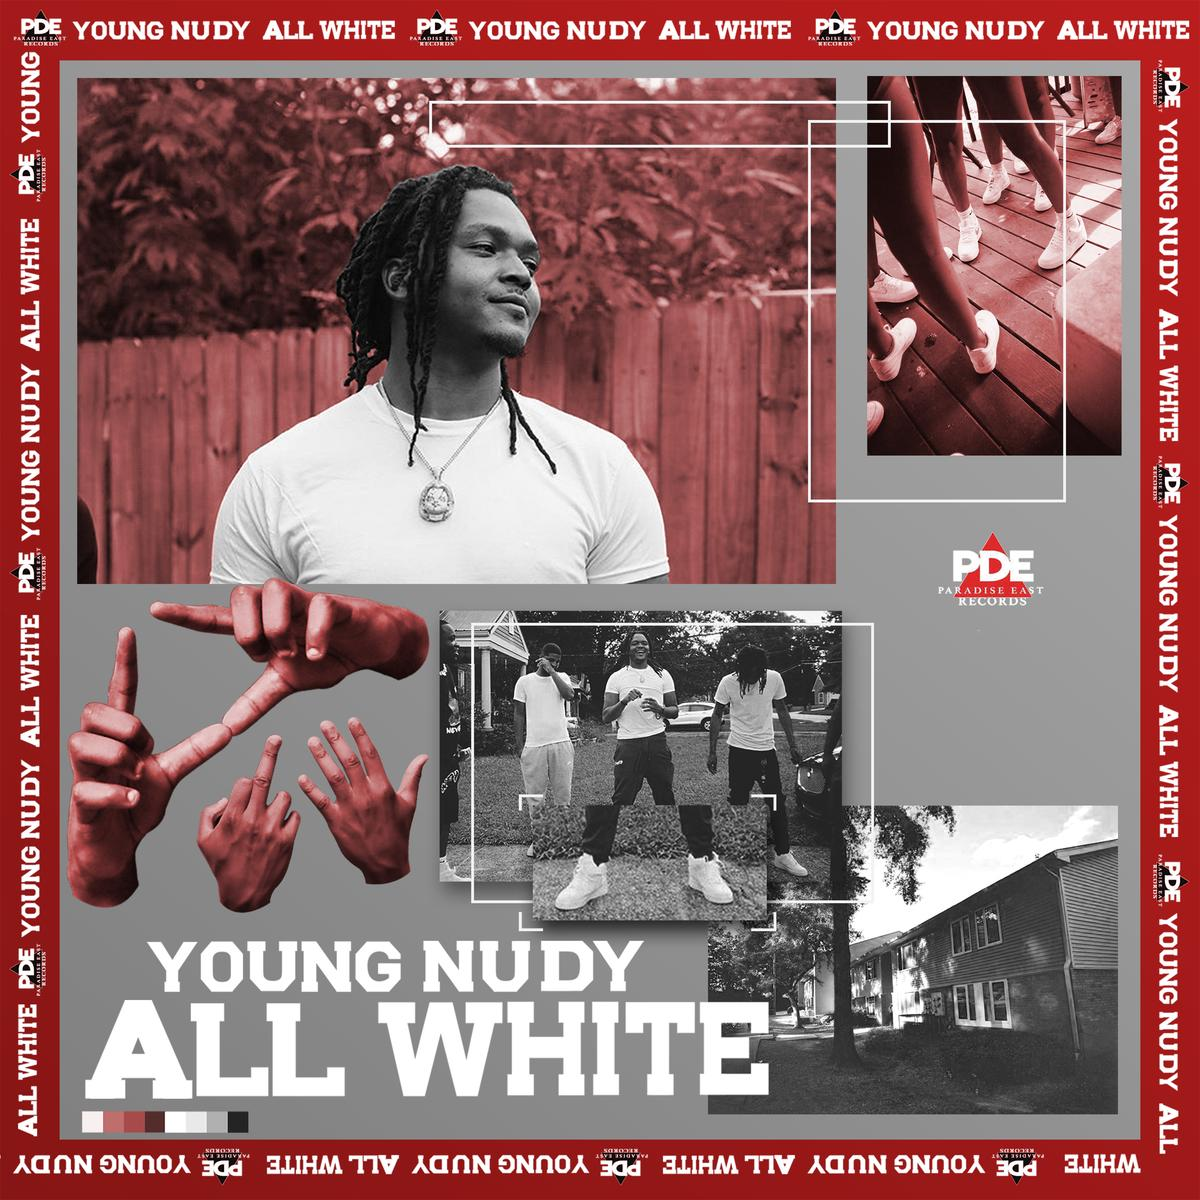 Young Nudy, LLC./RCA Records